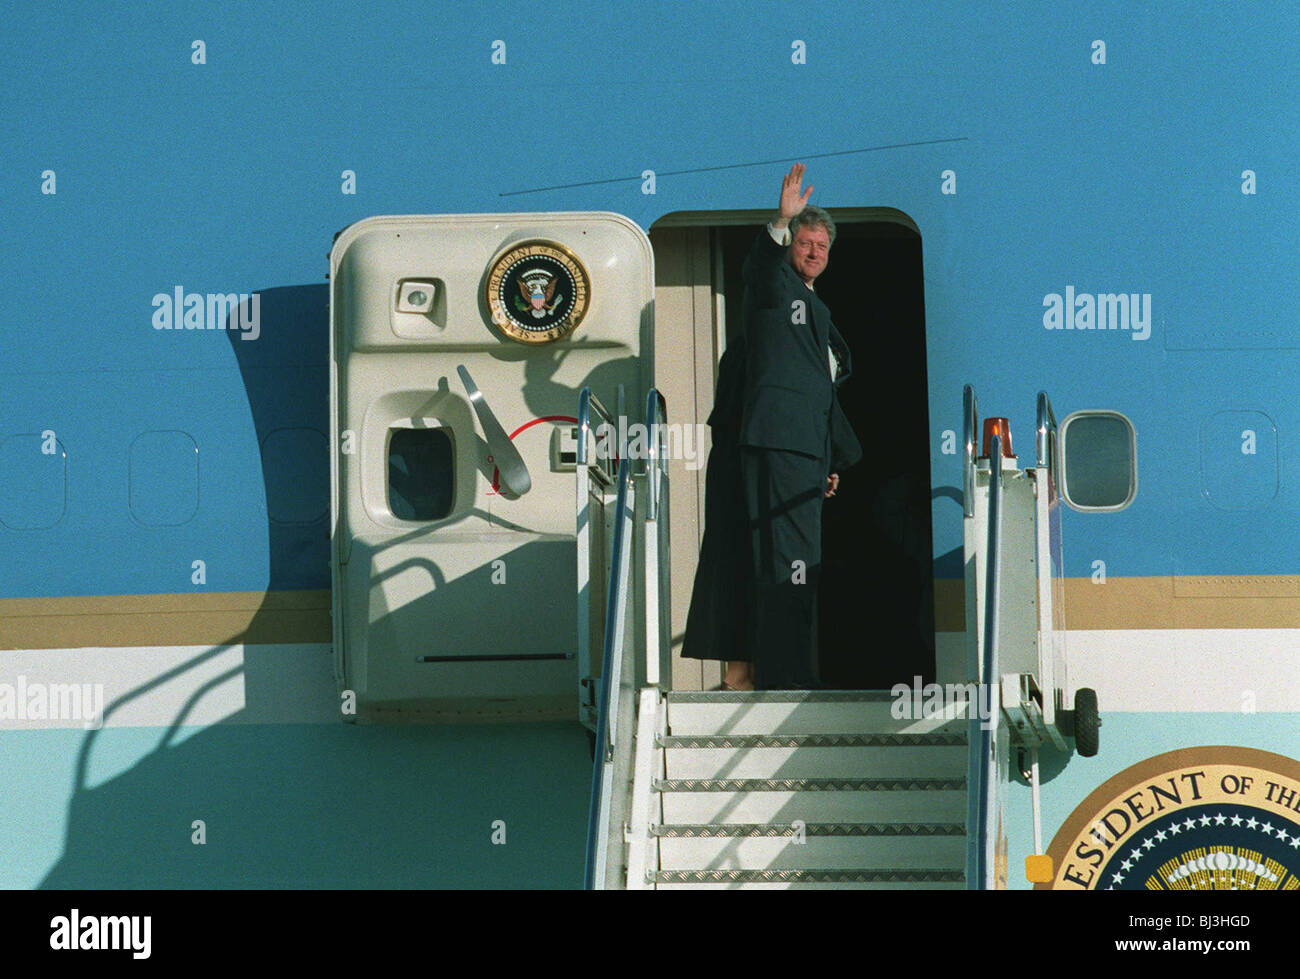 BILL CLINTON BOARDING AIRFORCE ONE 15 June 1994 - Stock Image